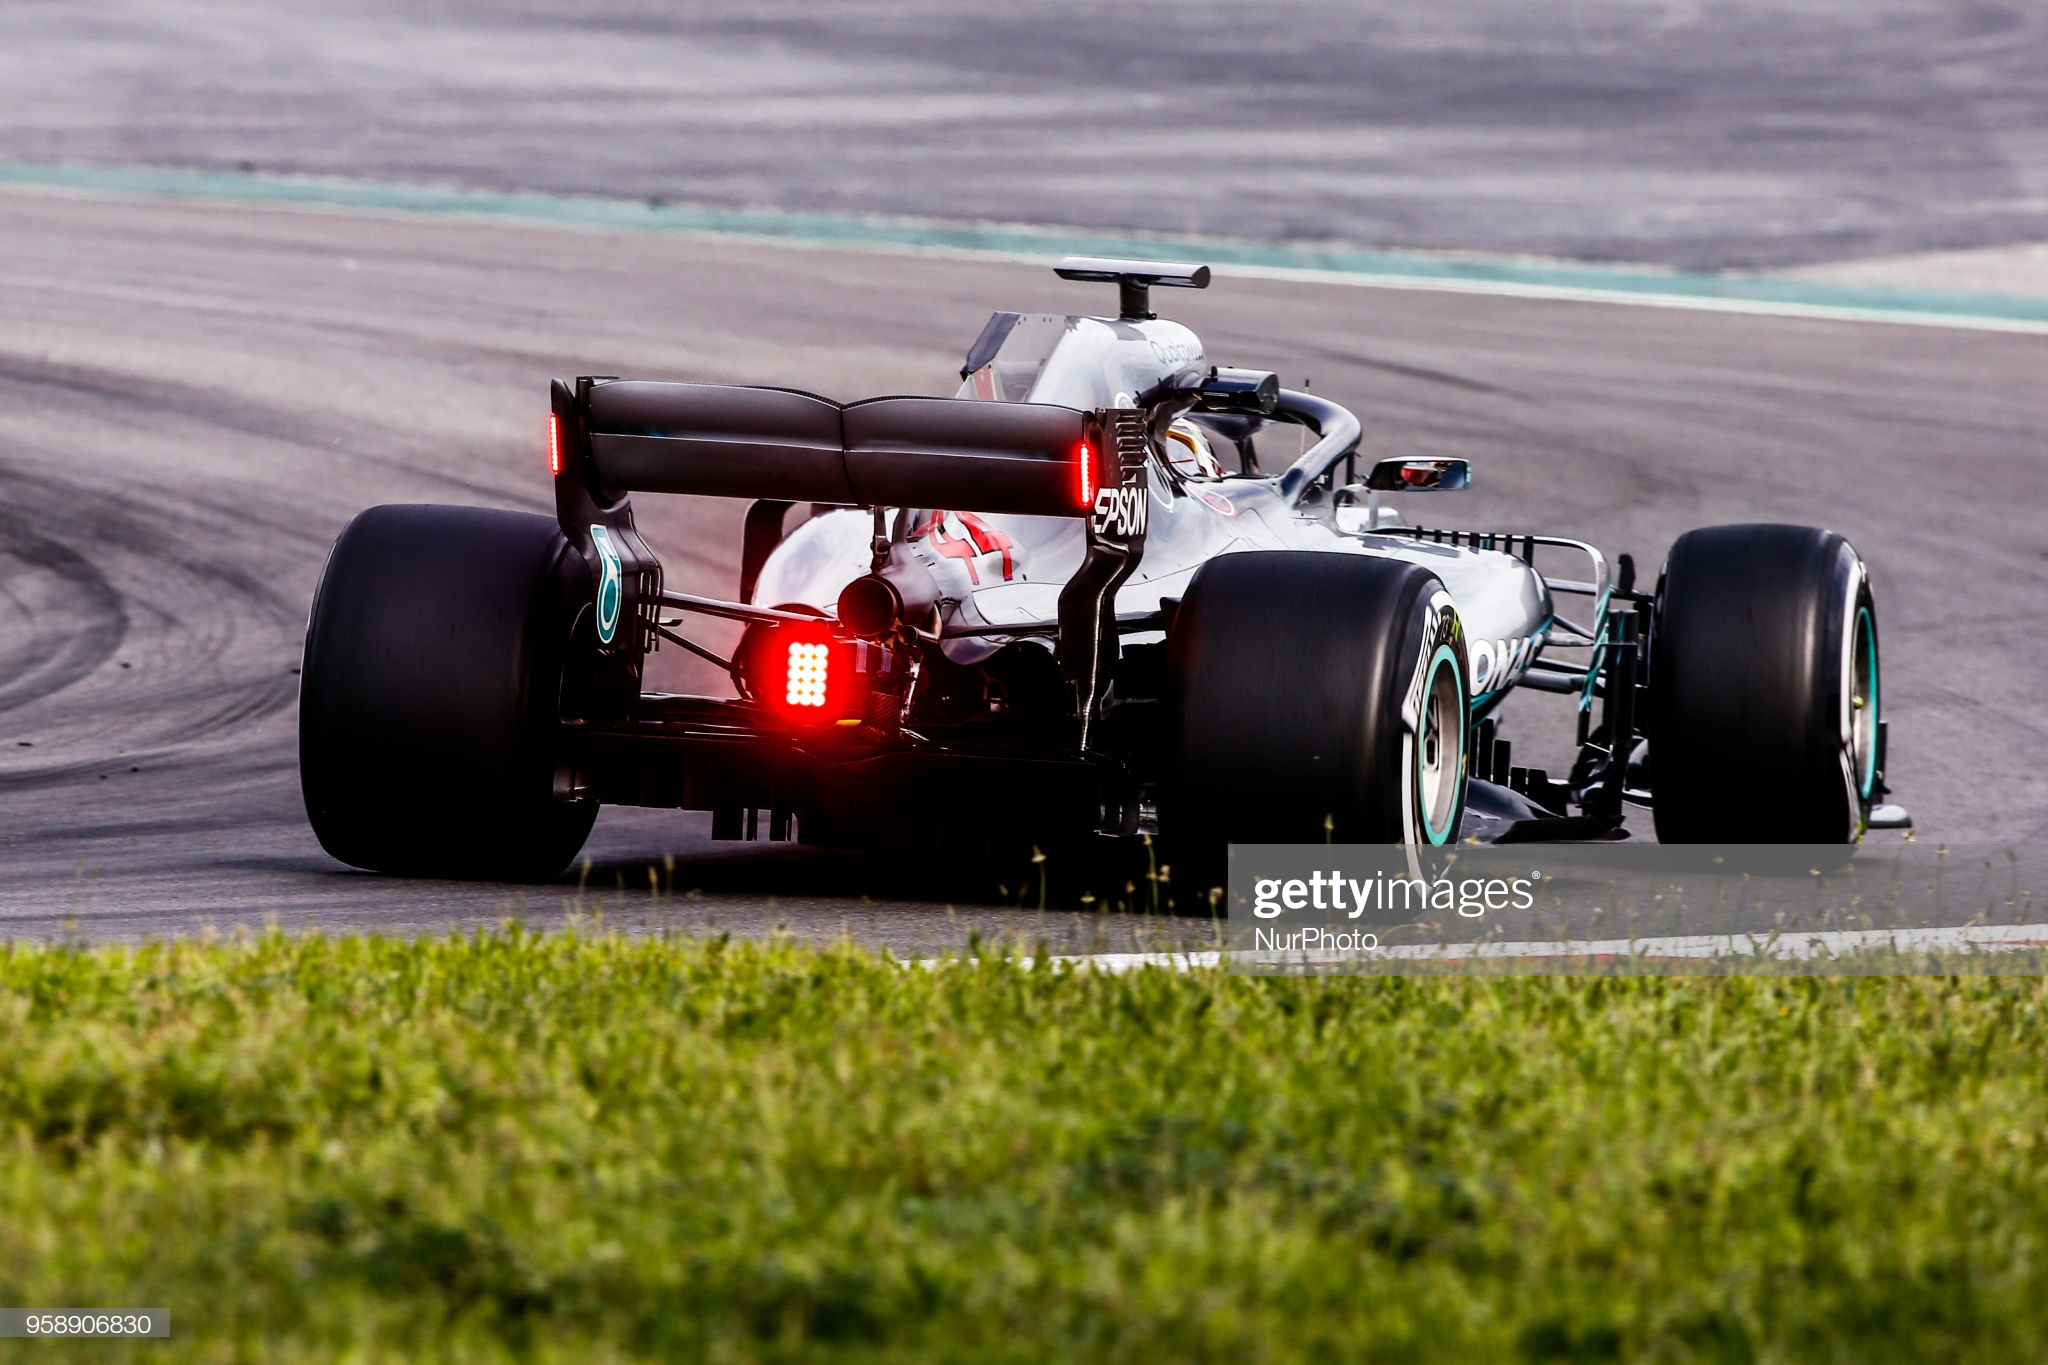 New rear lights for rain condicions for 2019 tested by 44 Lewis Hamilton from Great Britain Mercedes W09 Hybrid EQ Power+ team Mercedes GP during the Spanish Formula One in-season young drivers Tests at Circuit de Barcelona - Catalunya on 15th and 16th of March, 2018 in Montmelo, Spain. (Photo by Xavier Bonilla/NurPhoto via Getty Images)